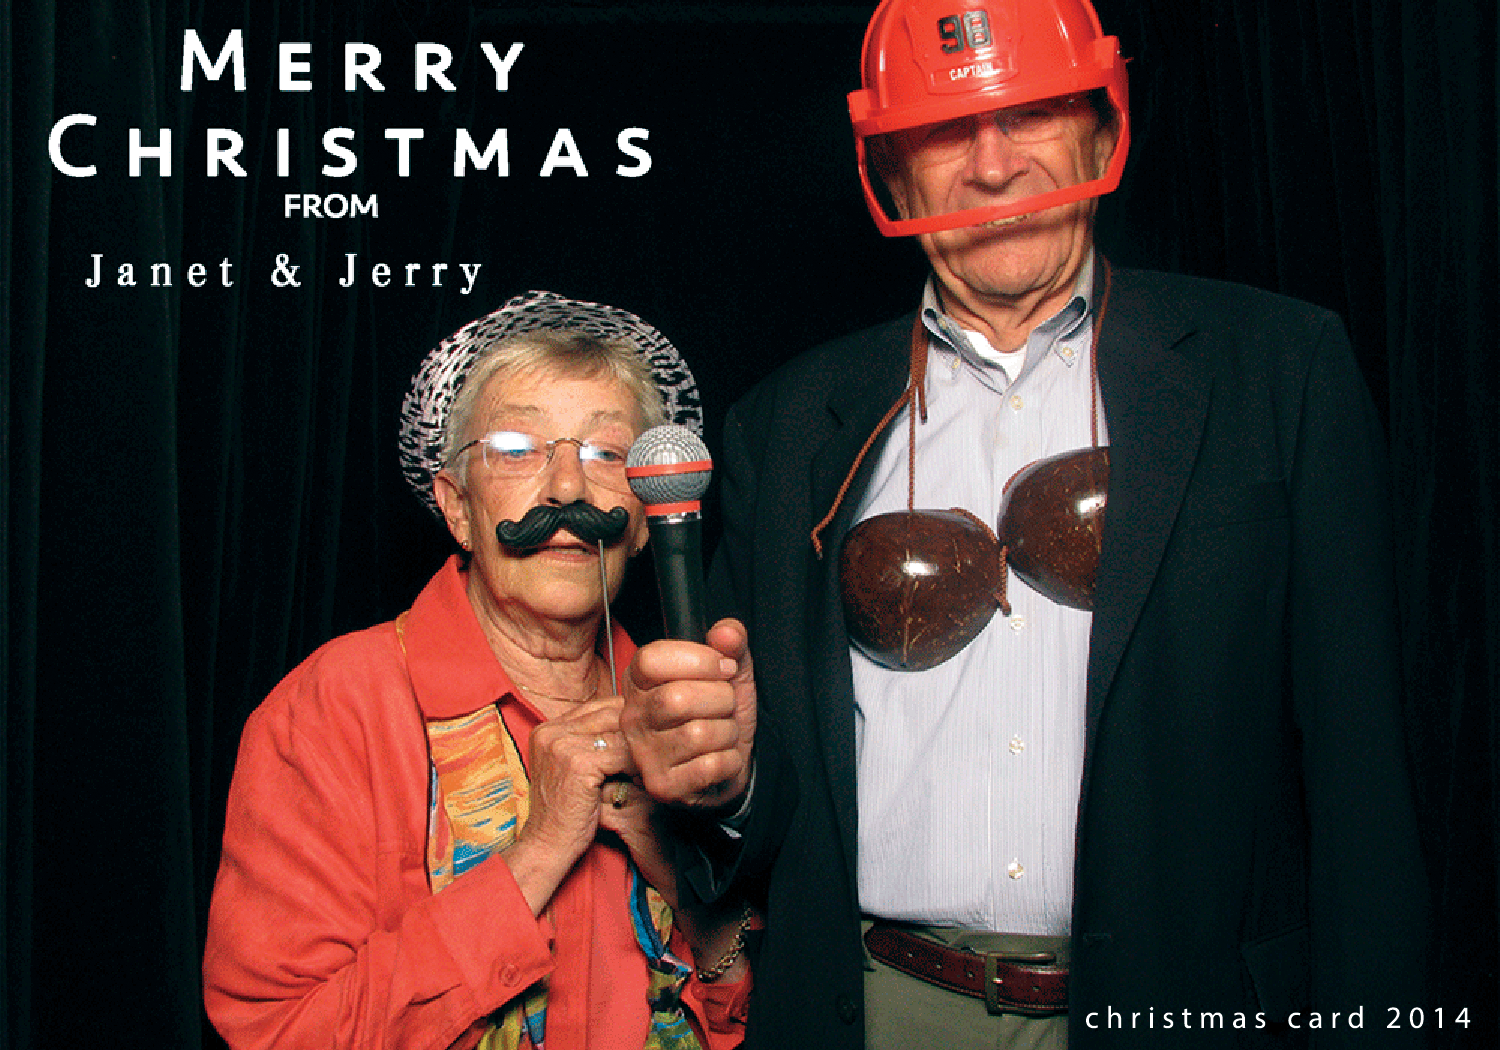 Yes, this was there christmas card. THE COOLEST GRANDMA  EVER . she actually picked this photo out and handed to me and asked if i could make this into a christmas card. so i did and this is what they sent out 2014.